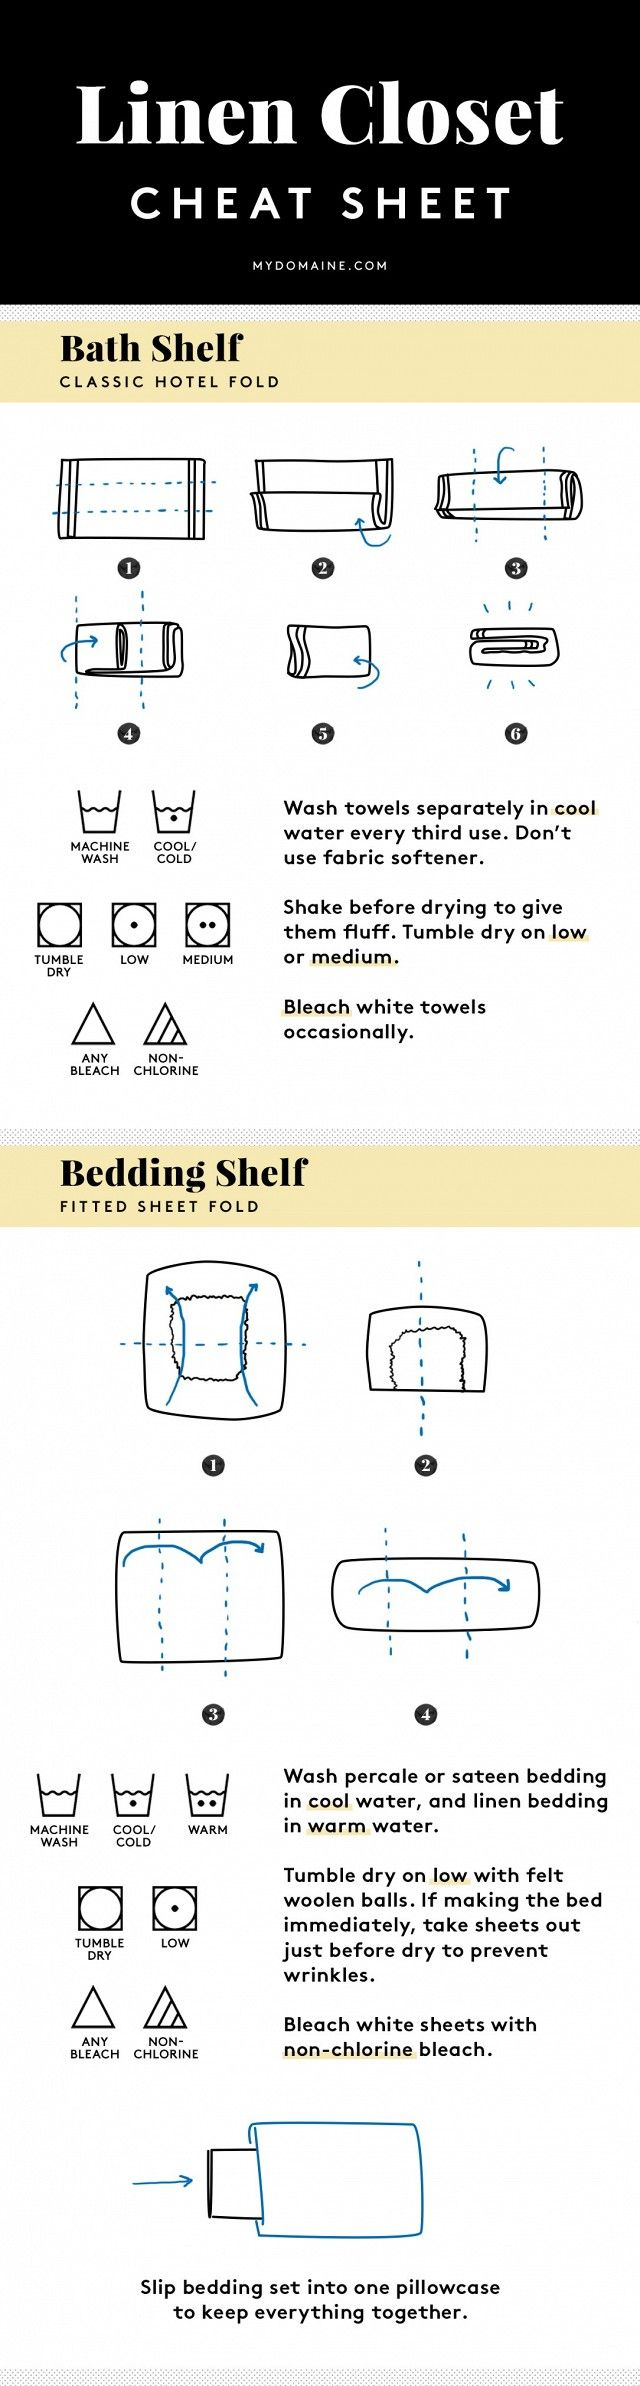 Tame that fitted sheet.